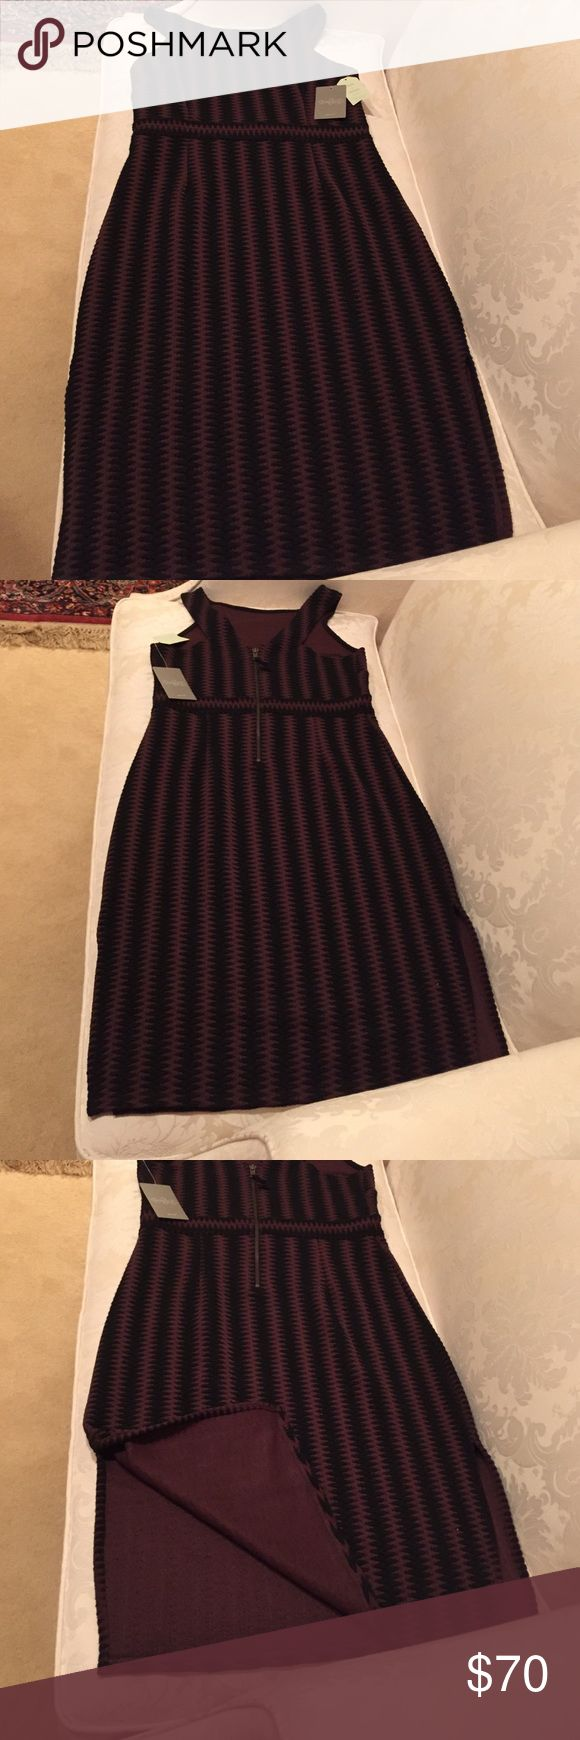 NWT Maeve brown and black striped dress Anthropologie Maeve dress brown and black vertical stripes, V back with back zipper and two side slits Maeve Dresses Midi